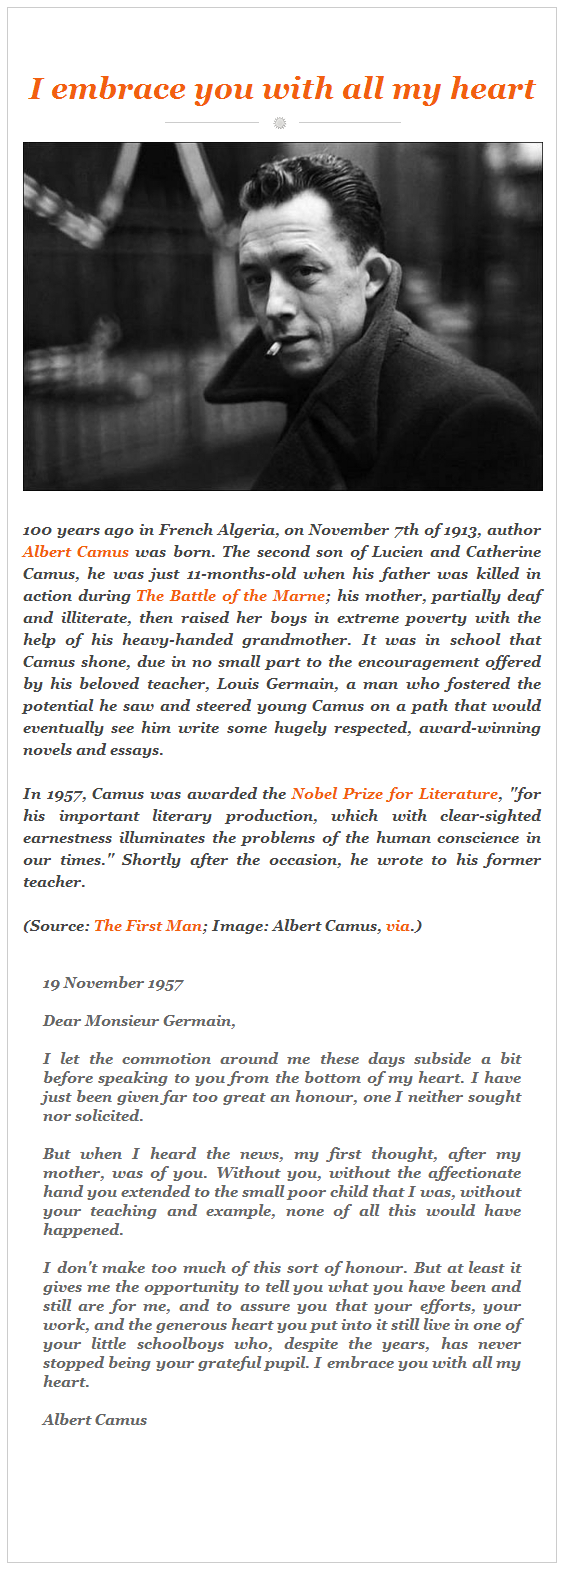 The Note Albert Camus Sent to his Teacher